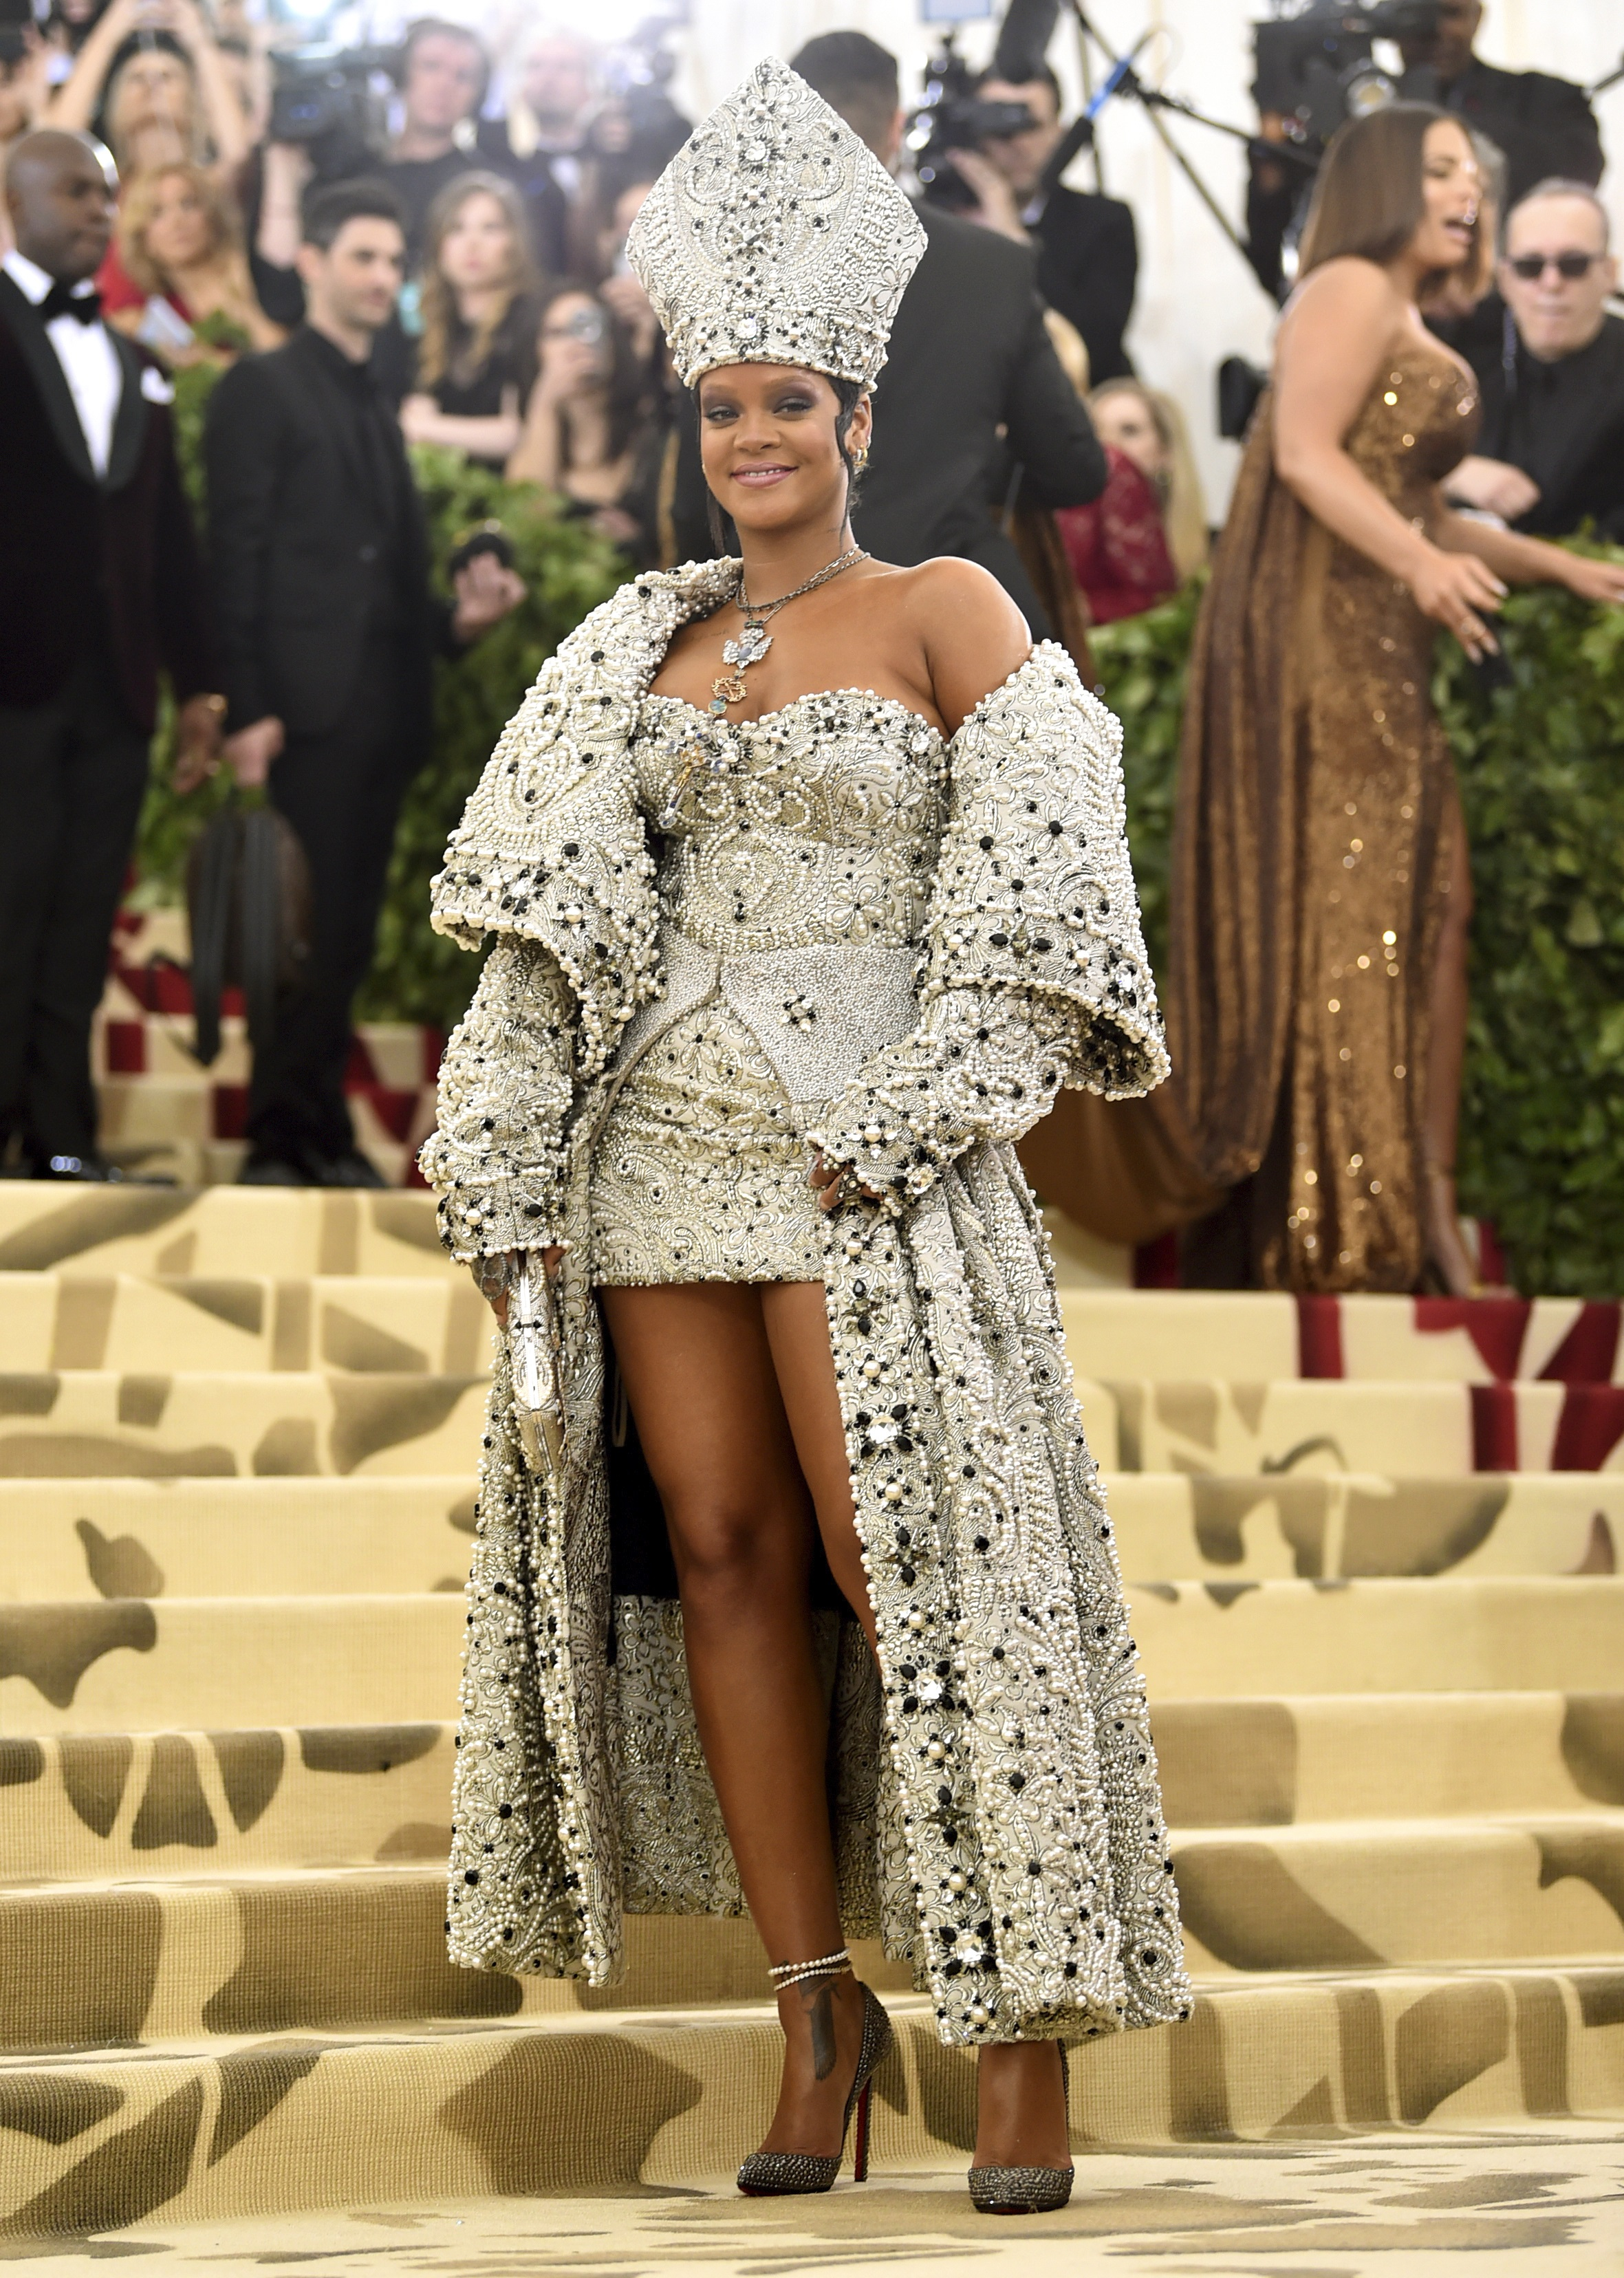 <div class='meta'><div class='origin-logo' data-origin='none'></div><span class='caption-text' data-credit='Evan Agostini/Invision/AP'>Rihanna (Photo by Evan Agostini/Invision/AP)</span></div>